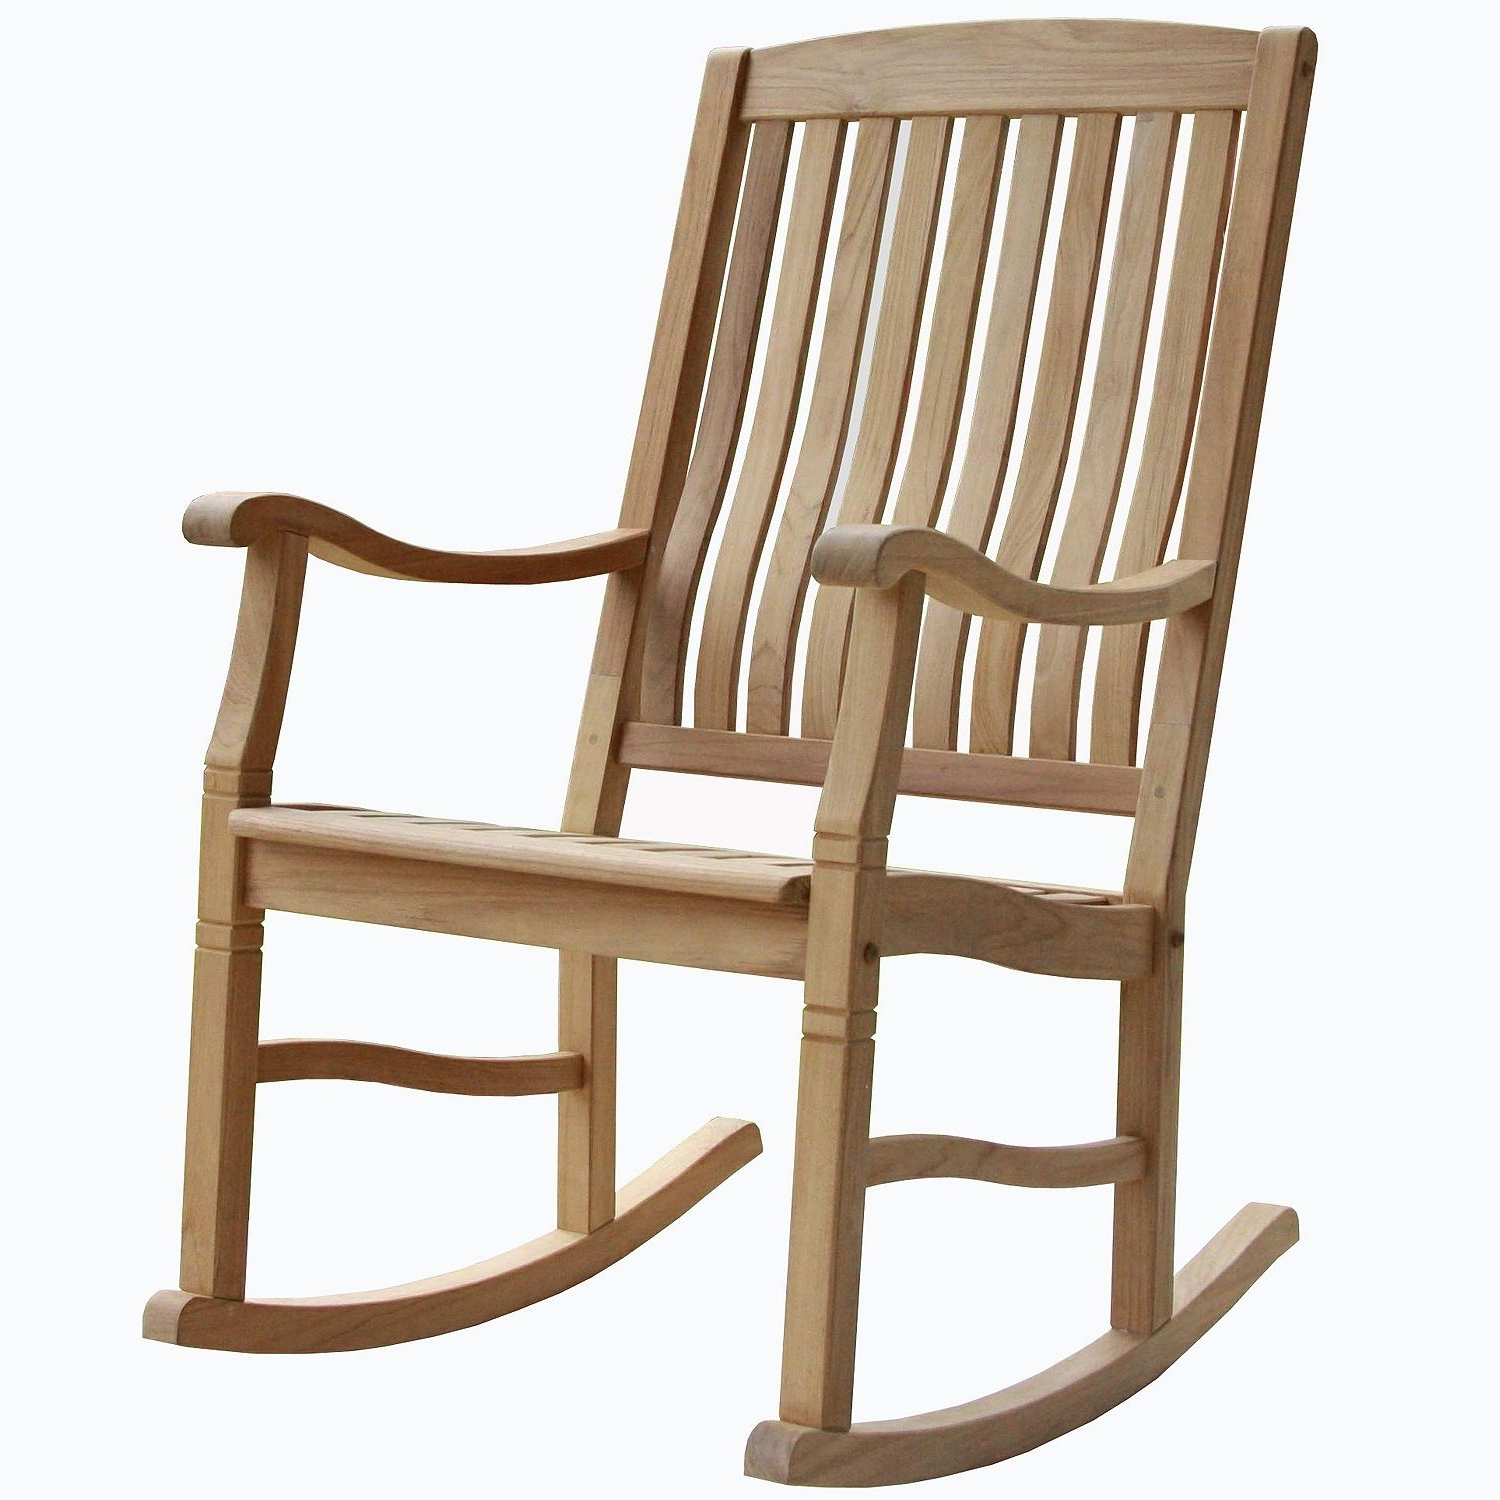 Favorite Teak Patio Rocking Chairs Within Teak Rocking Chair (2 Pack) (View 11 of 15)